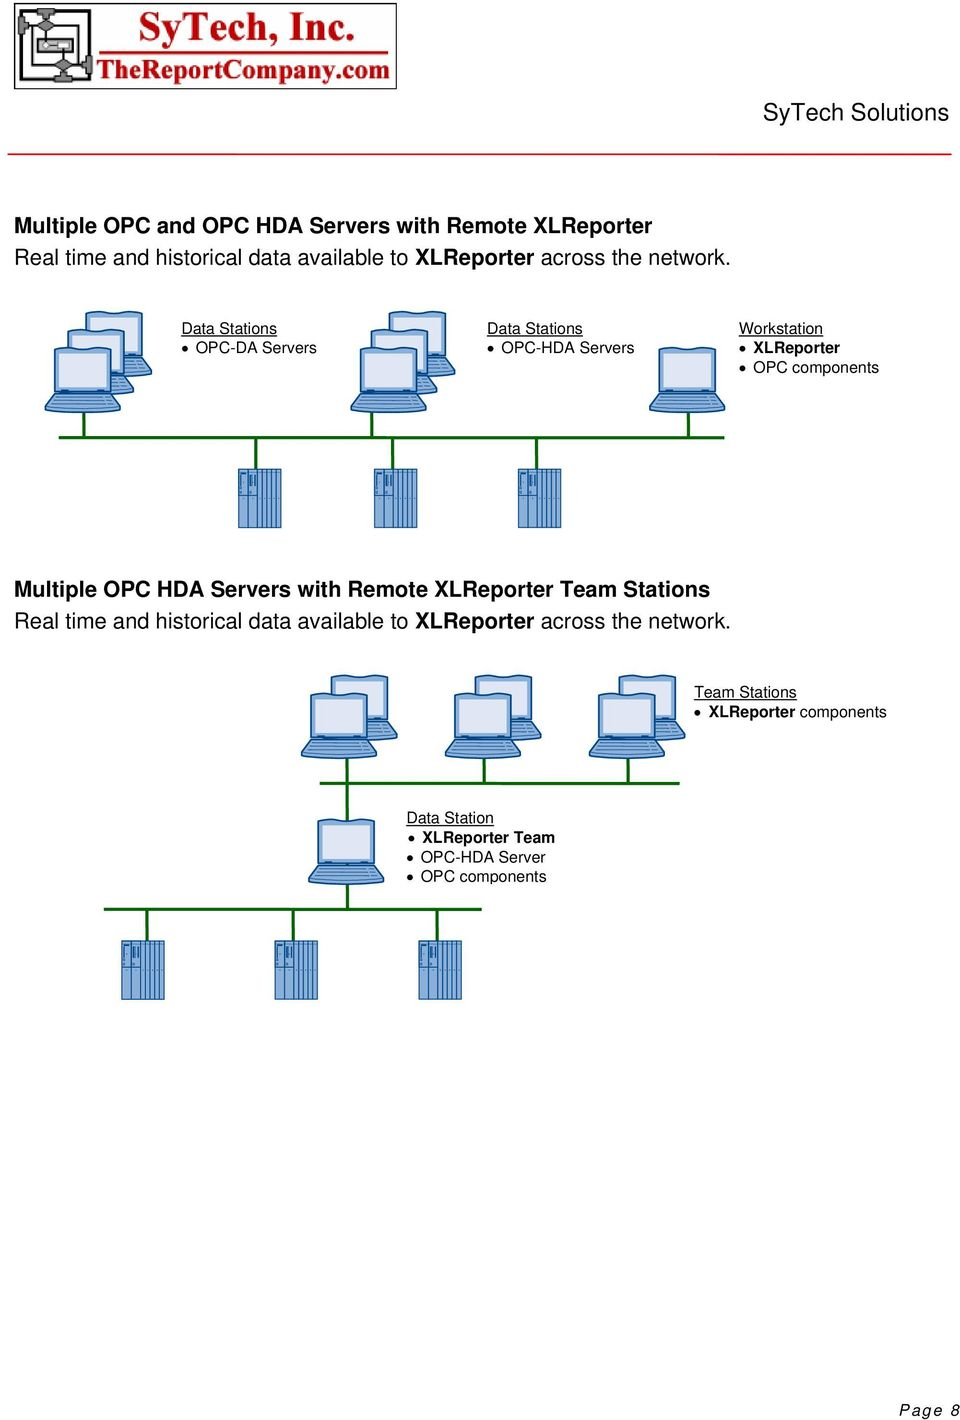 Product Summary of XLReporter with OPC Servers - PDF